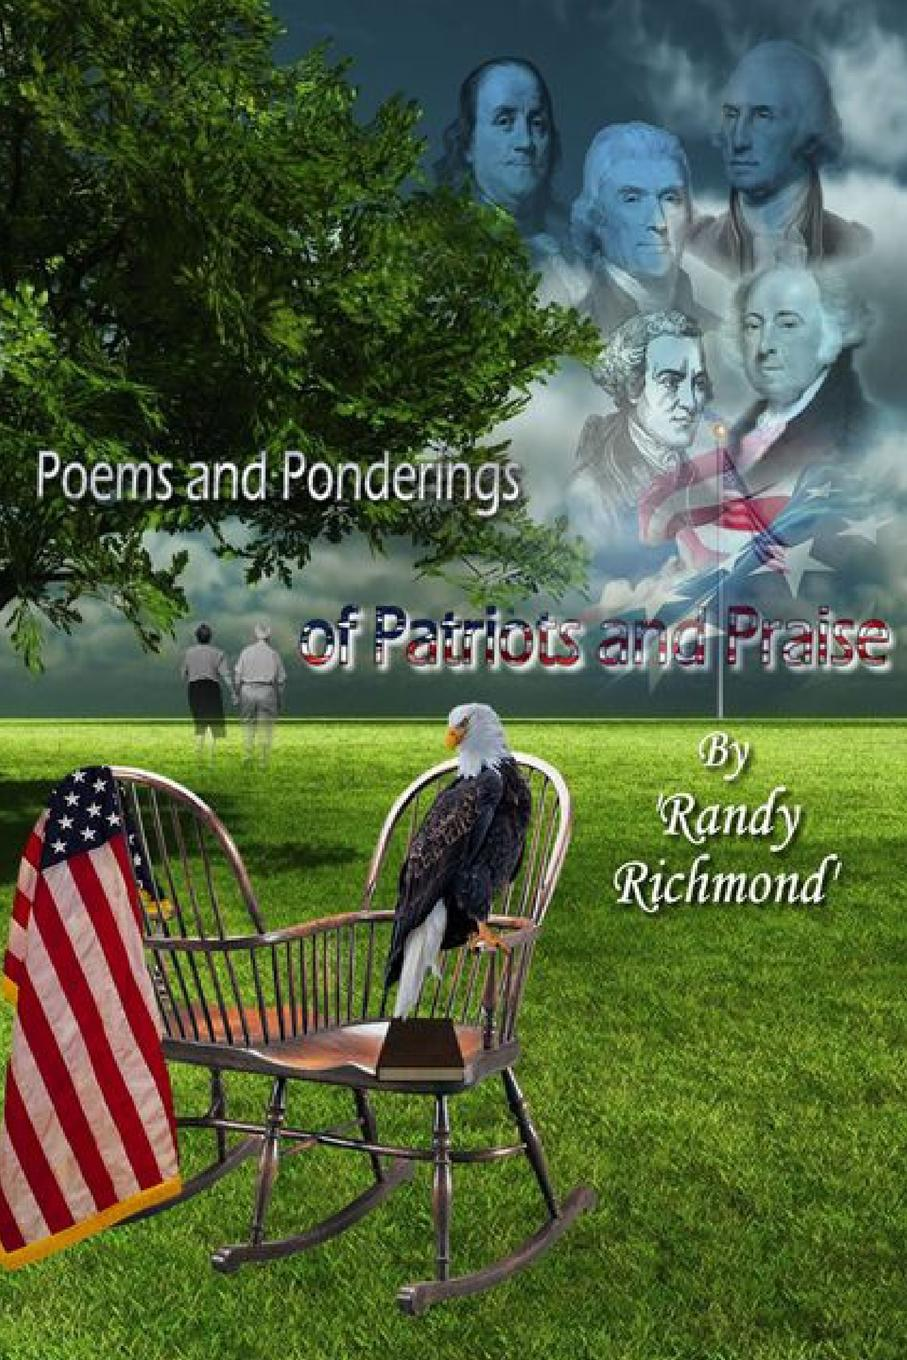 Randy Richmond Poems and Ponderings of Patriots and Praise a spy among friends